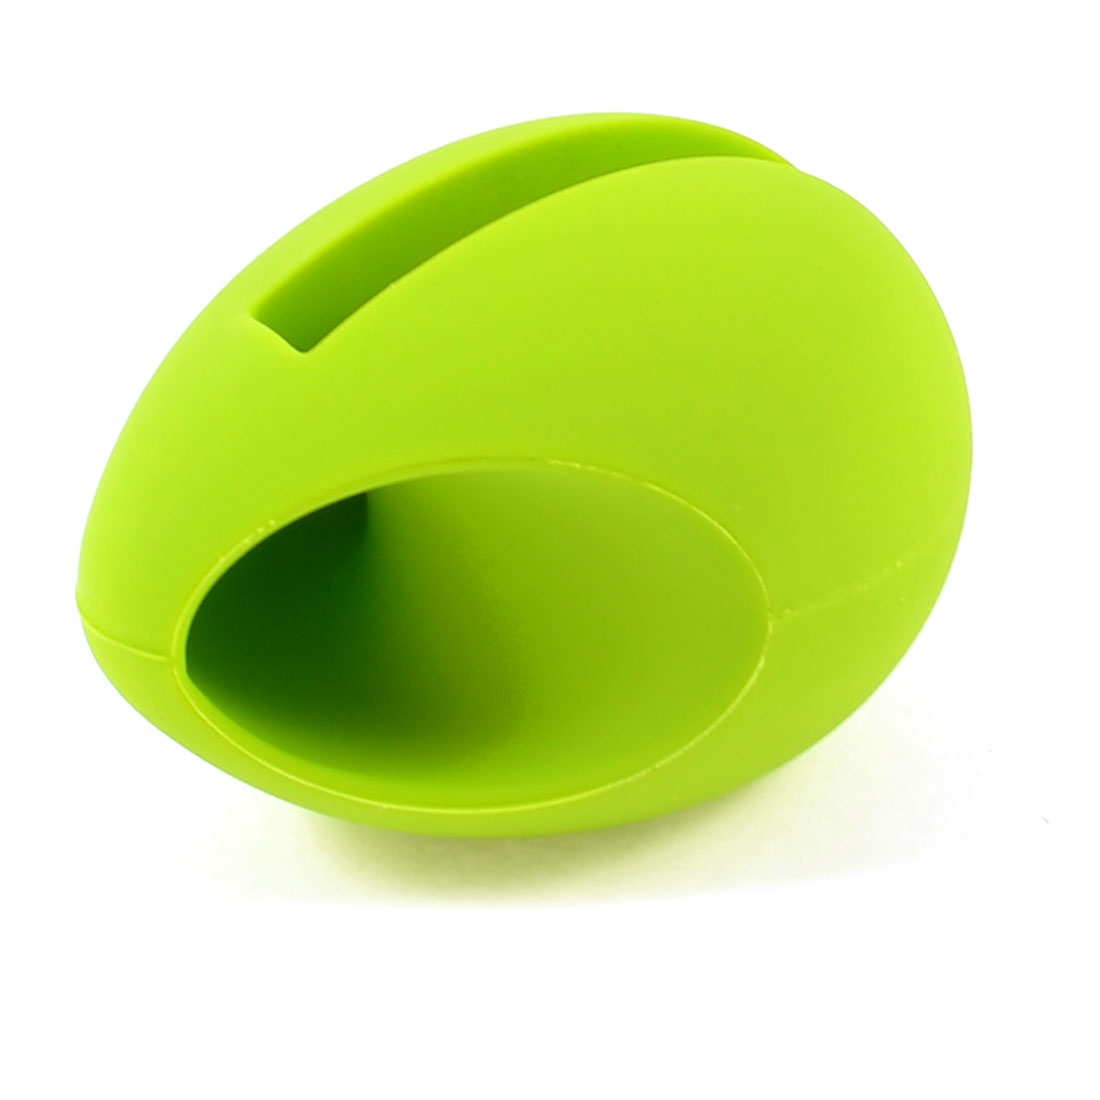 Music Egg Shaped Stand Green Audio Dock Loud Speaker Amplifier